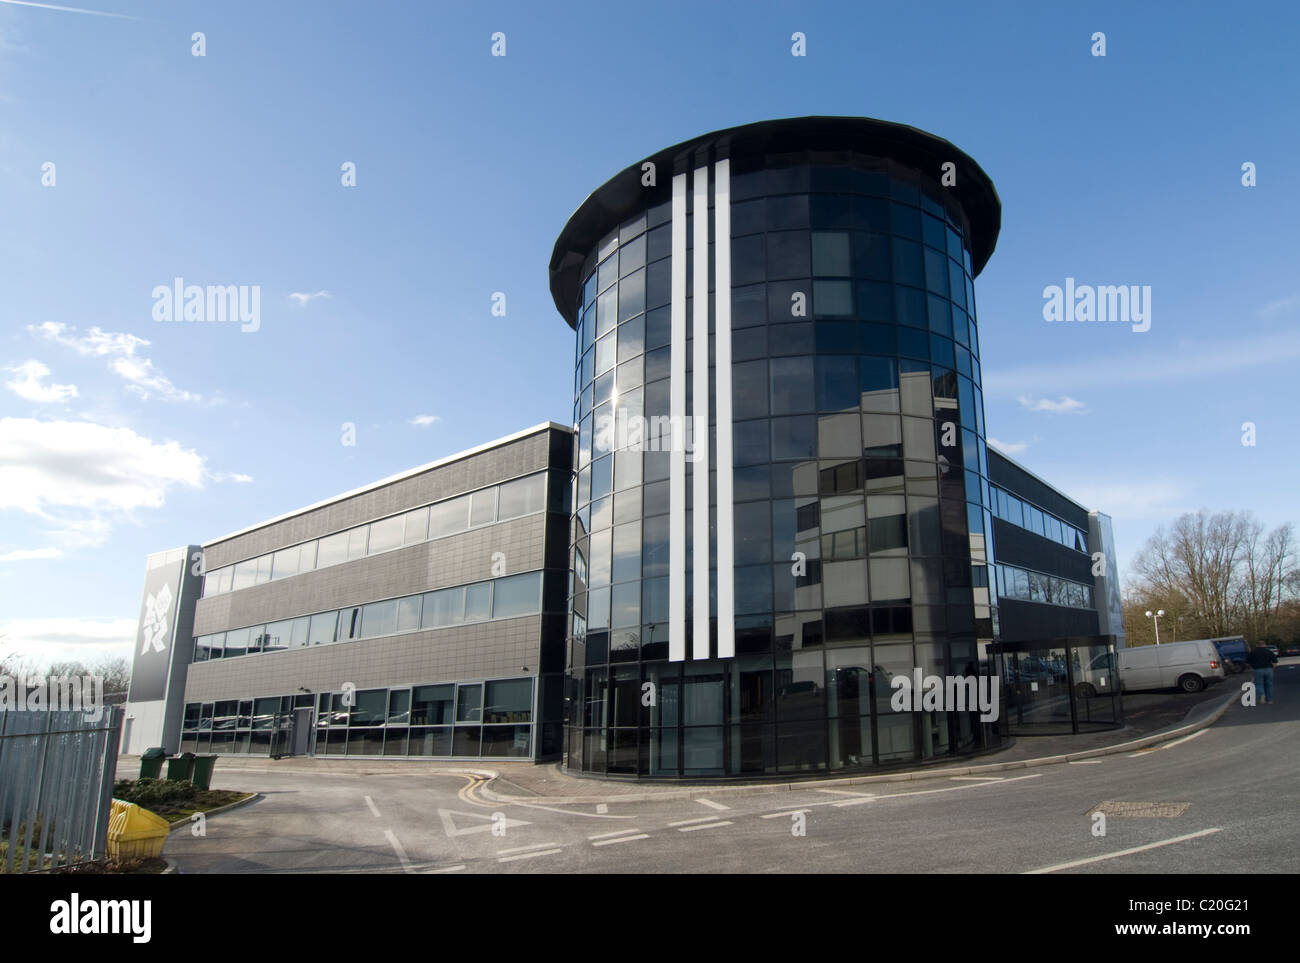 Adidas Business Headquarters  Stockport Manchester - Stock Image